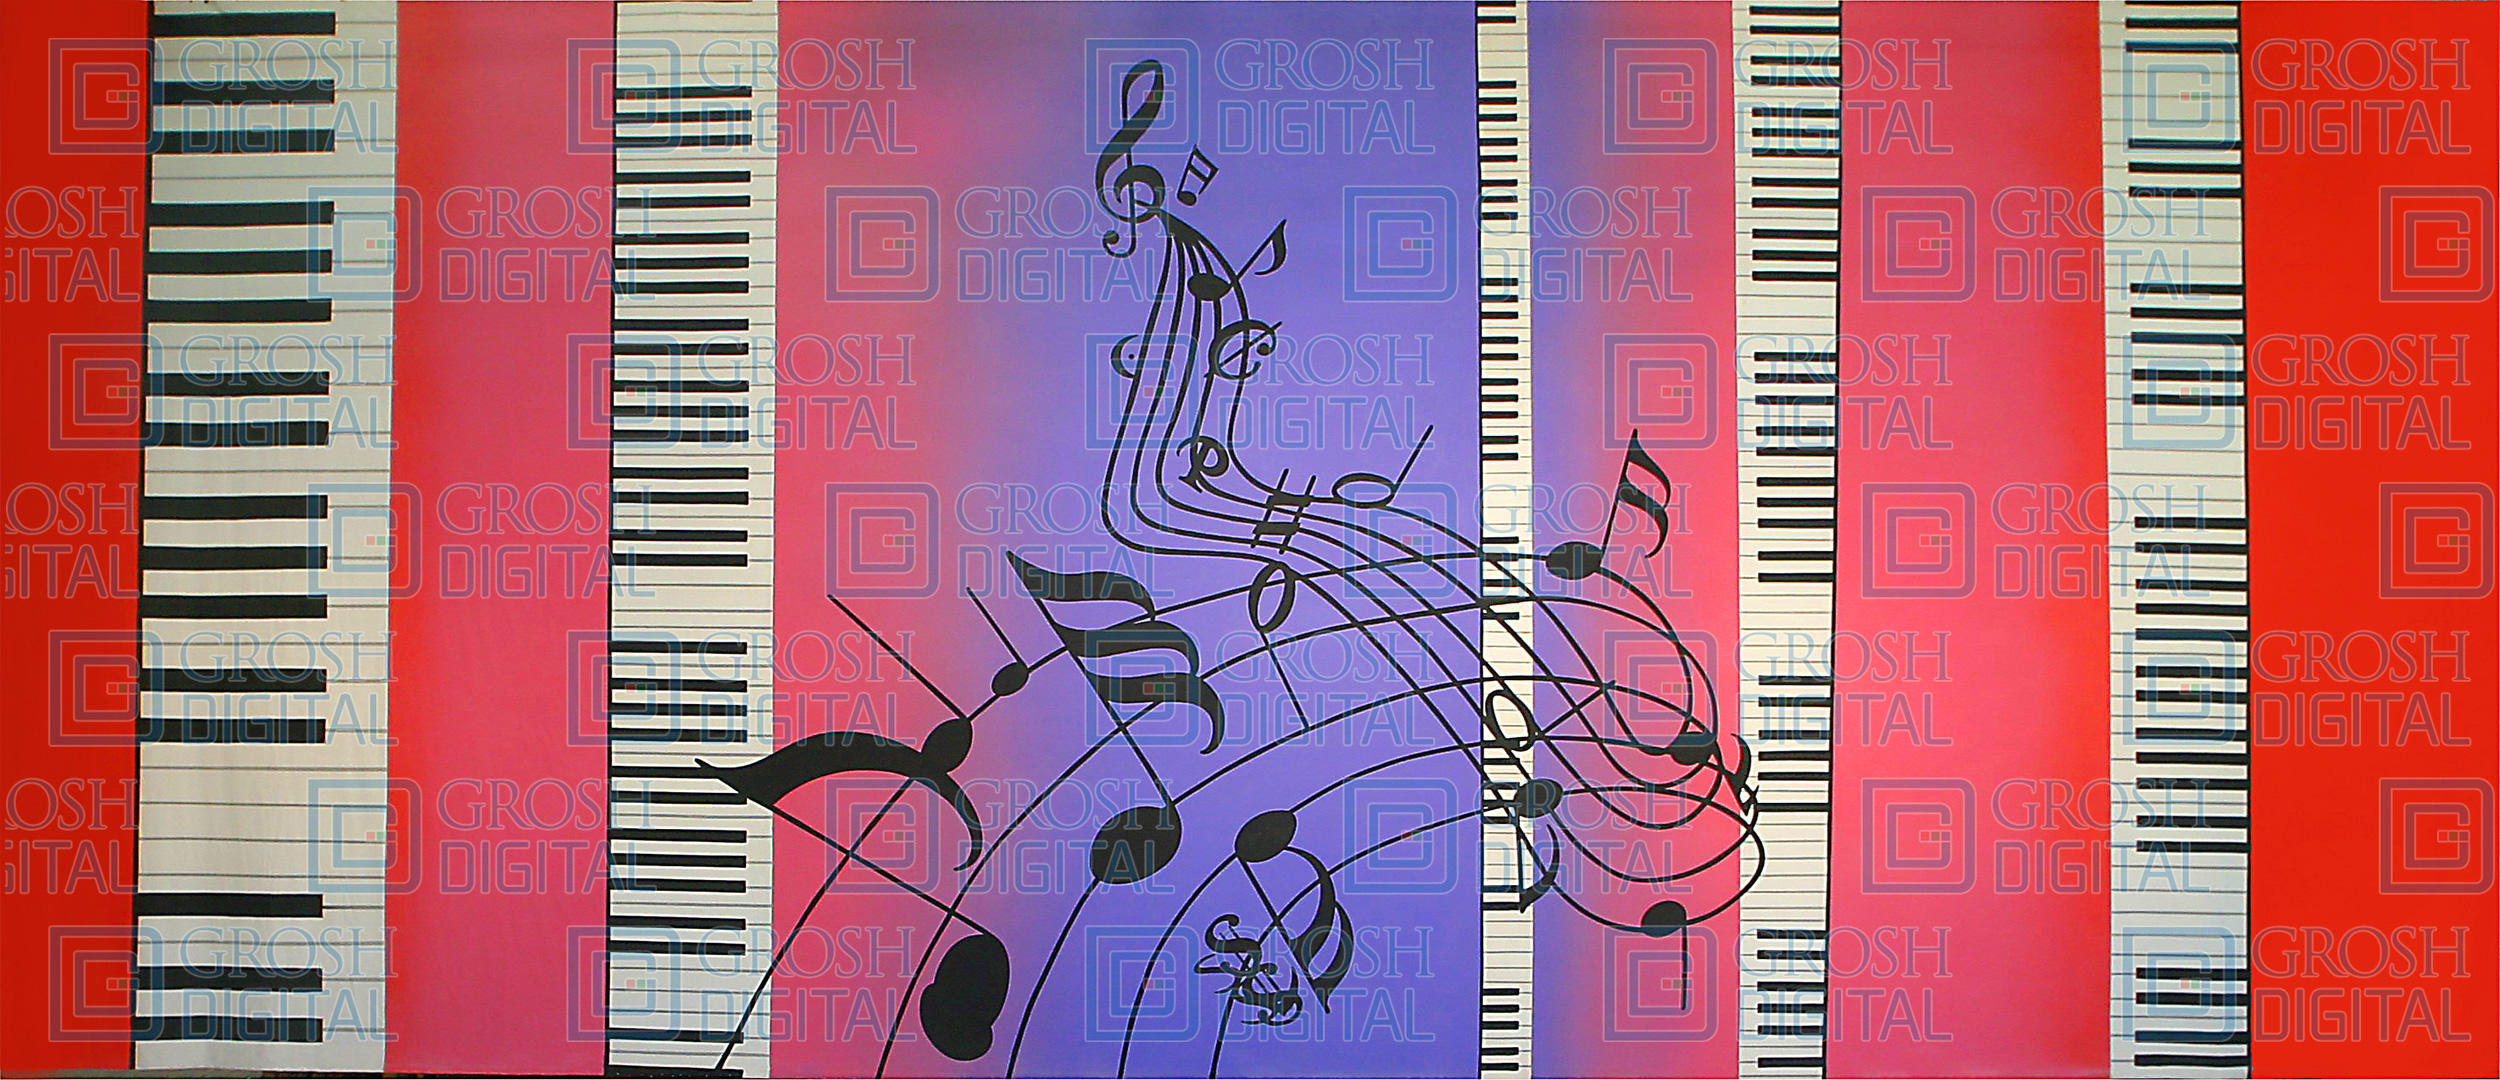 Piano keys with musical notes projected backdrops grosh digital piano keys with musical notes projected backdrop for abstract dance guys and dolls malvernweather Image collections